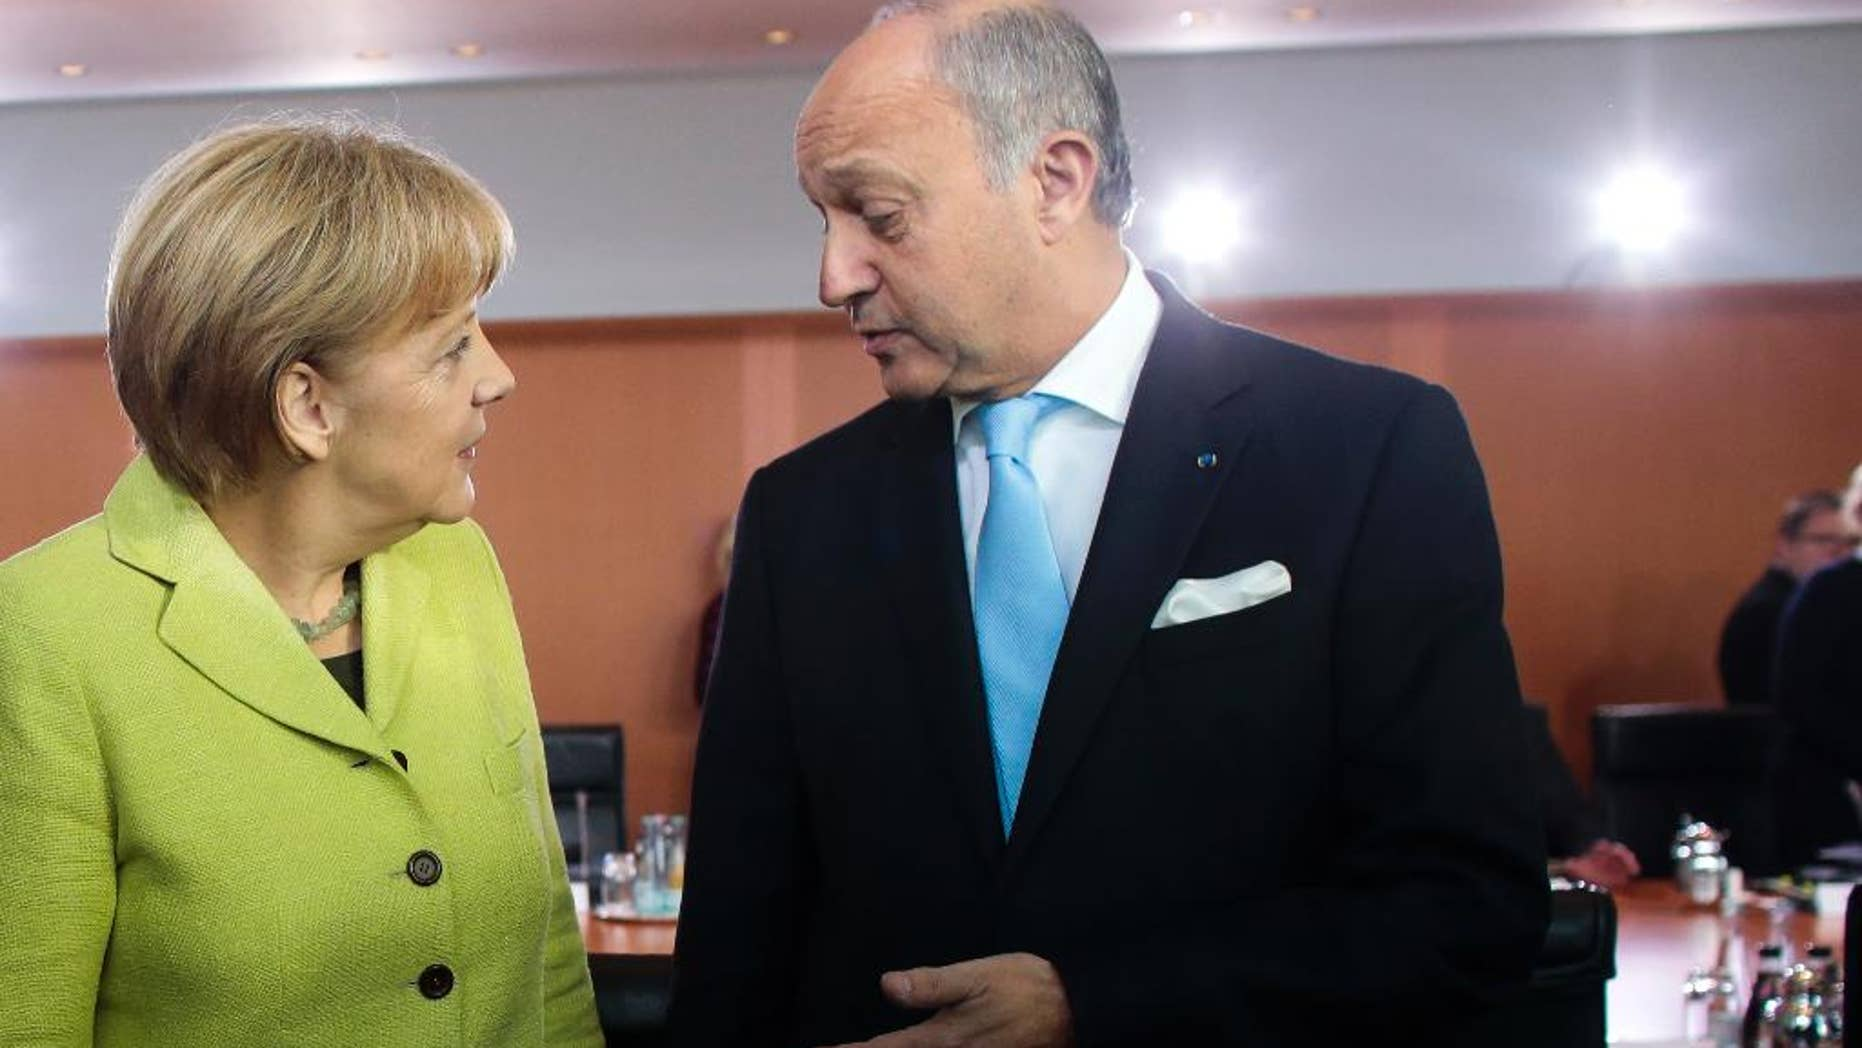 German Chancellor Angela Merkel, left, welcomes France Foreign Minister Laurent Fabius, right, for the German government's cabinet meeting at the chancellery in Berlin, Wednesday, Oct. 15, 2014. Laurent Fabius attends the cabinet meeting as a guest. (AP Photo/Markus Schreiber)